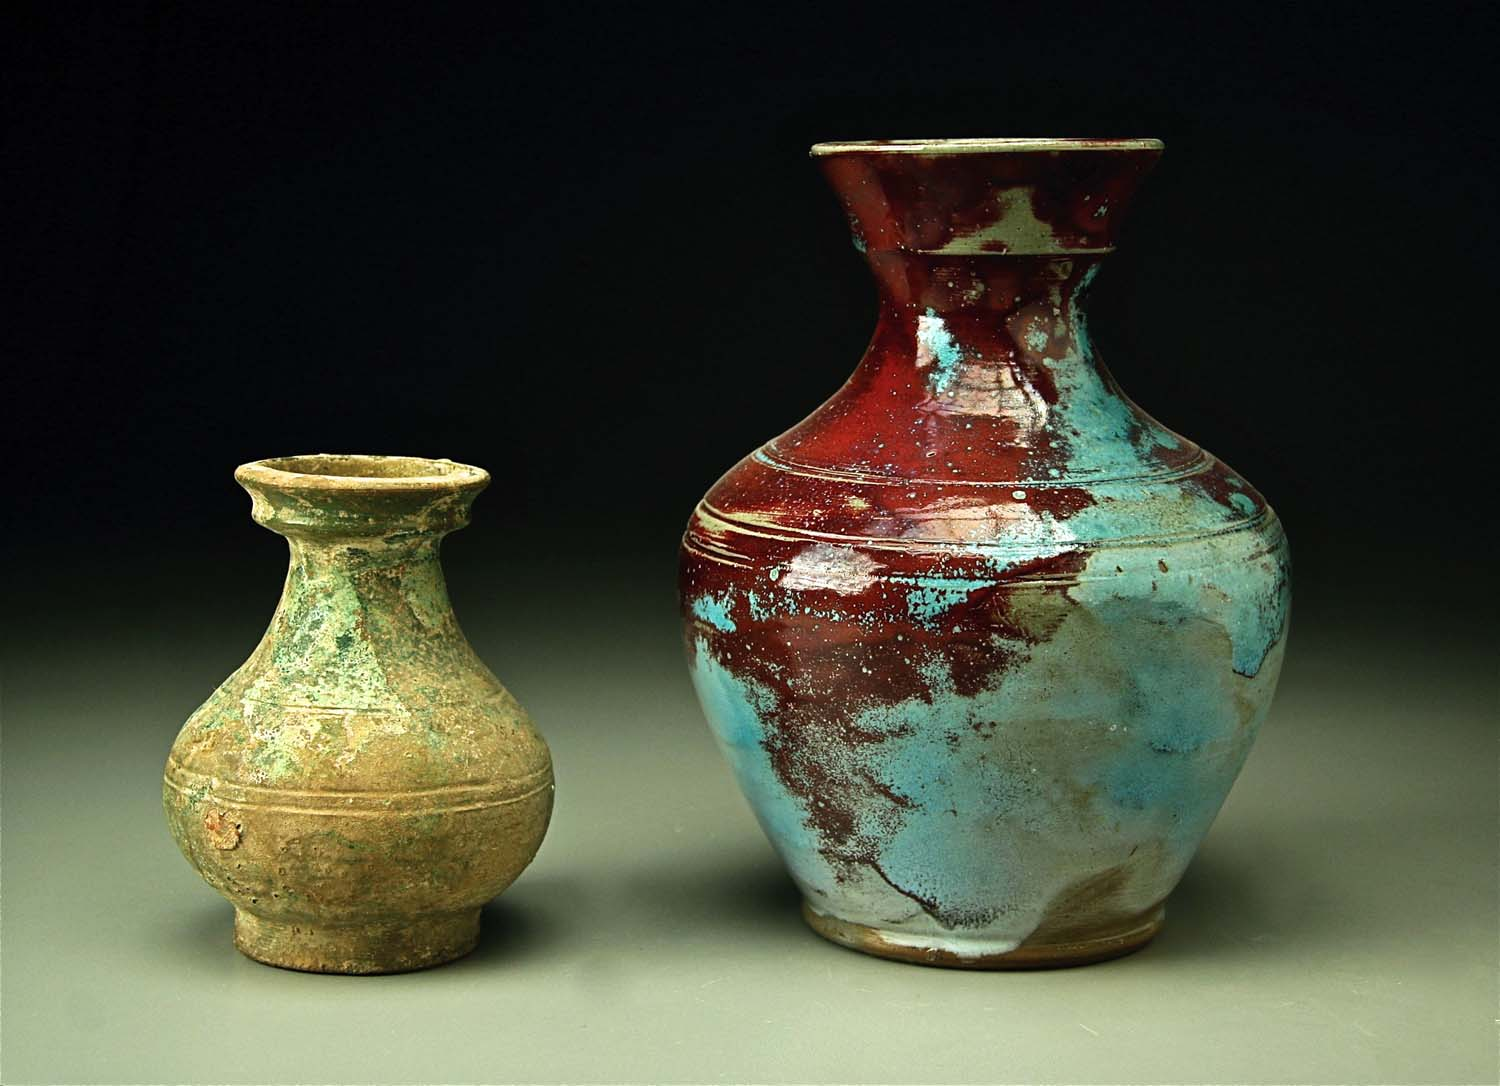 Han Vase from China and Jugtown prototype in Chinese Blue Ben Owen 1930sweb.jpg